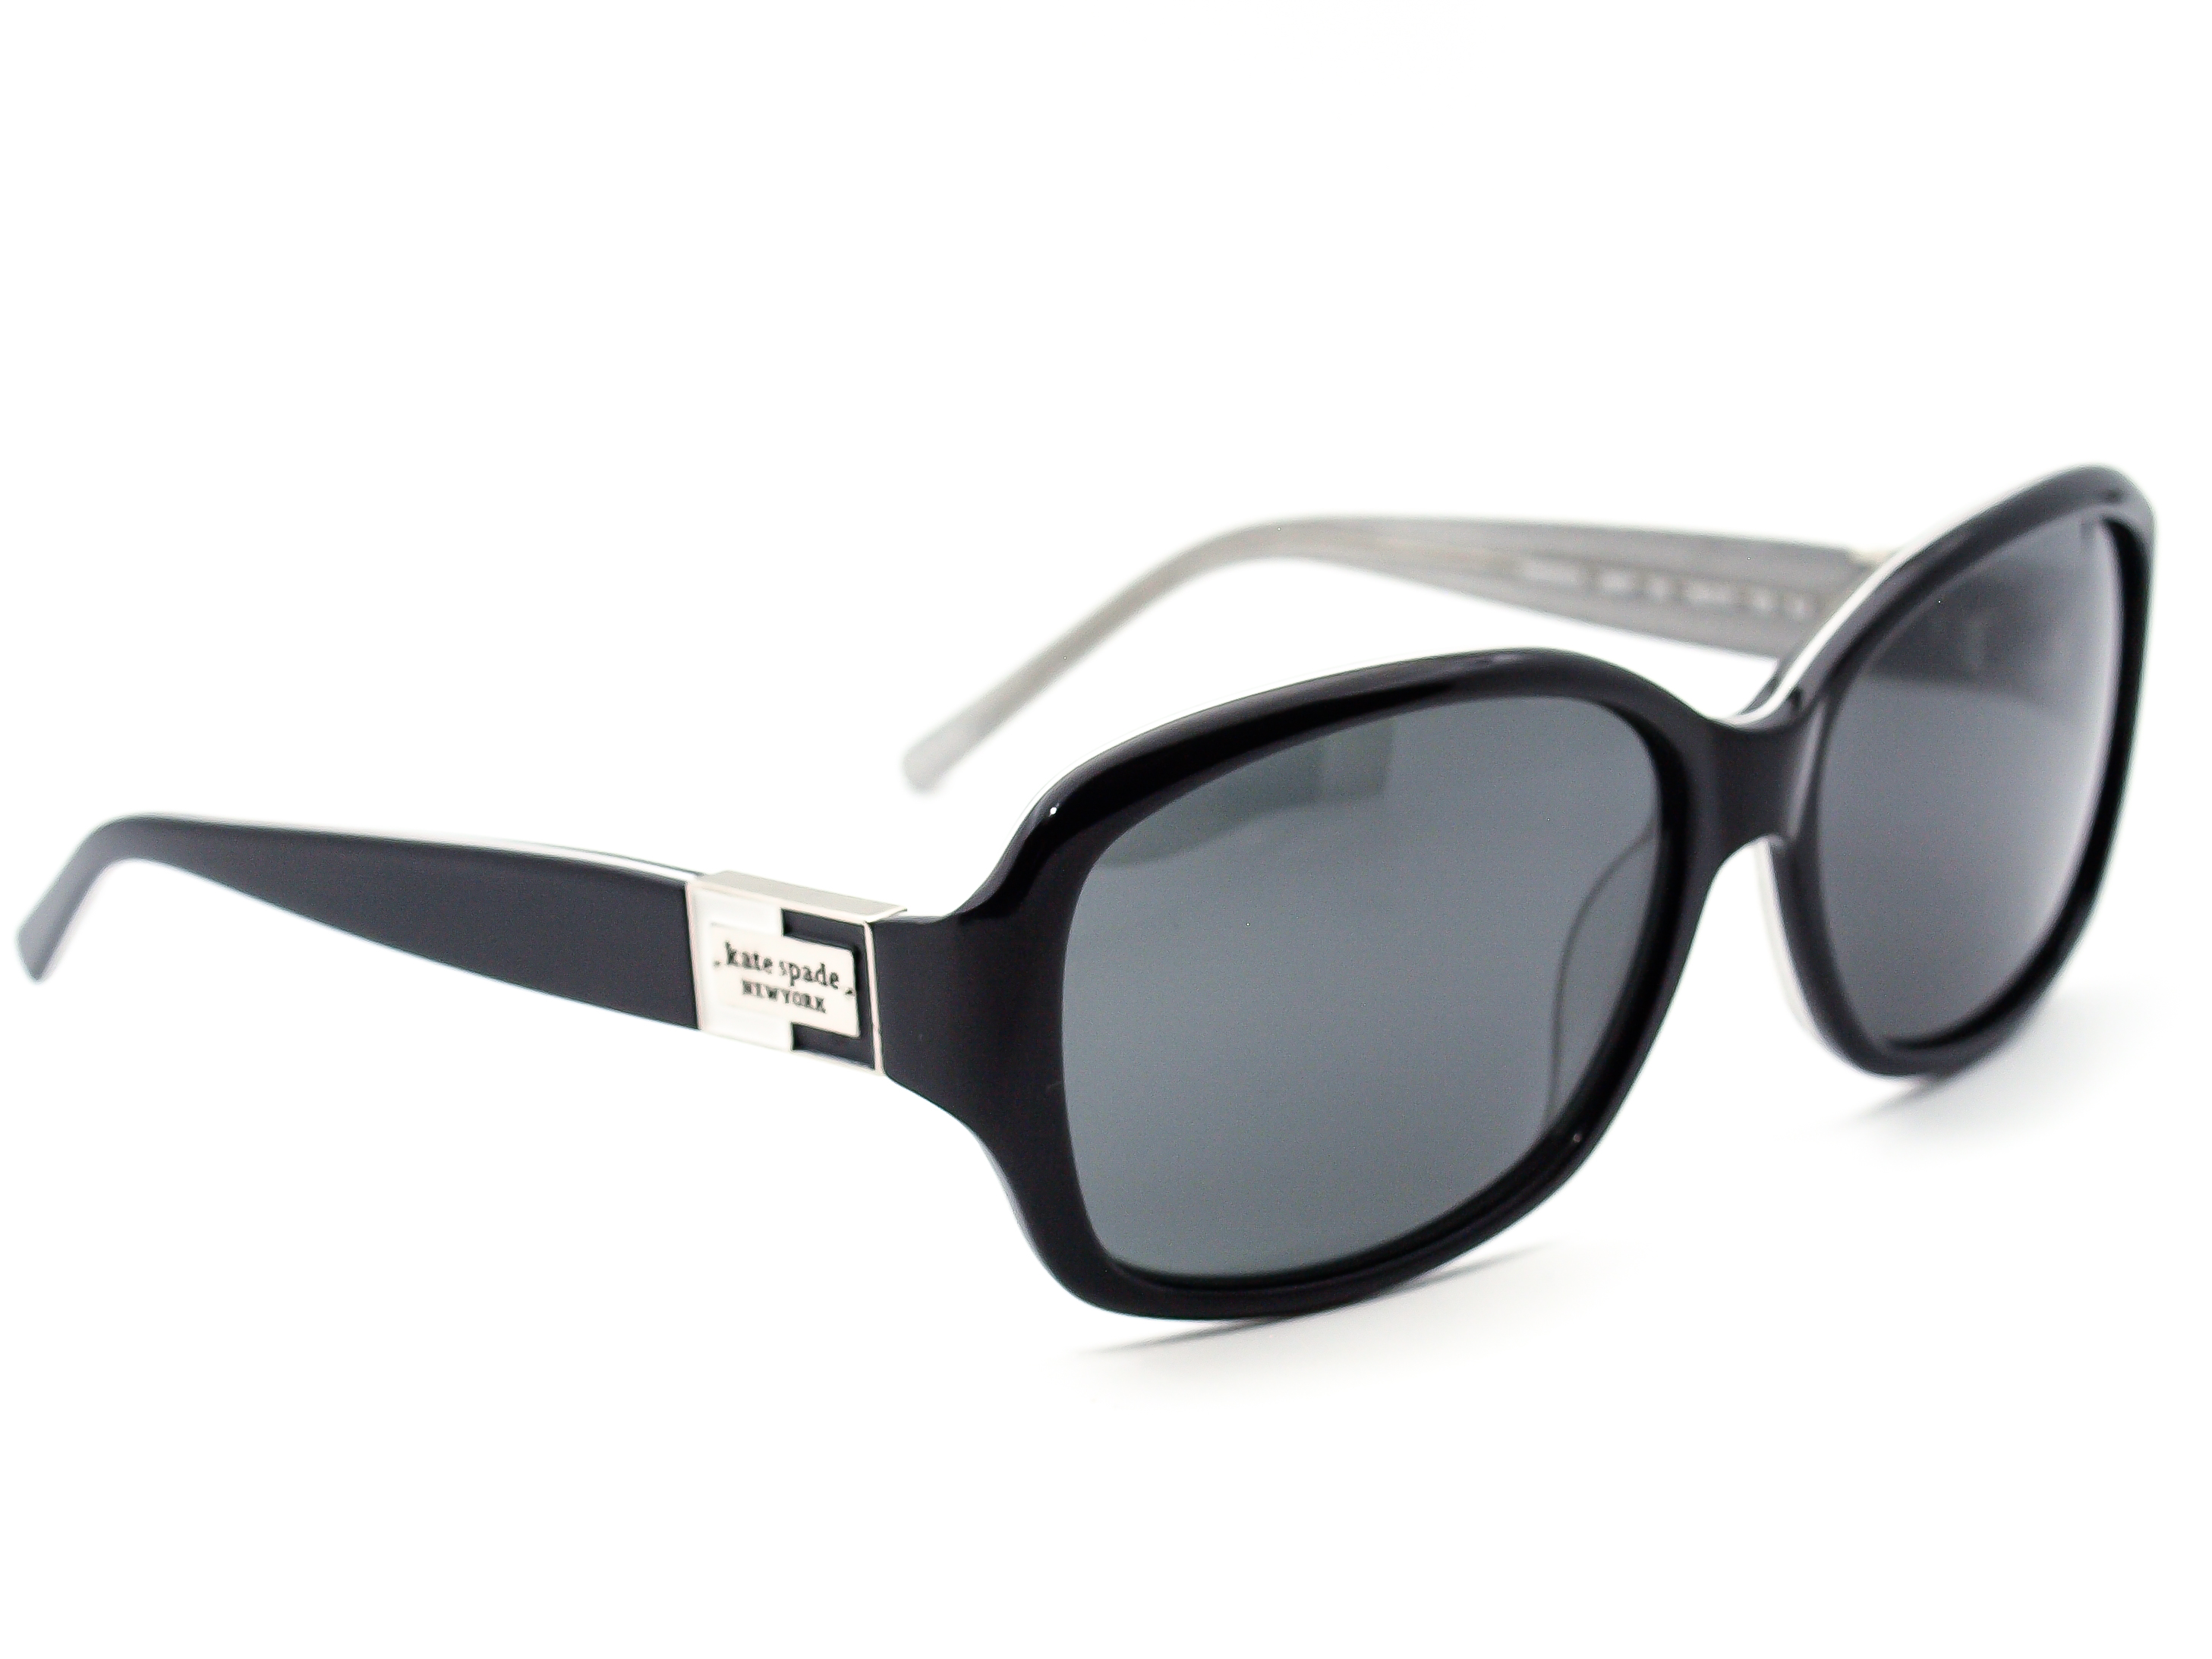 Kate Spade Annika/S JBHP RA 6-6 Polarized  Sunglasses